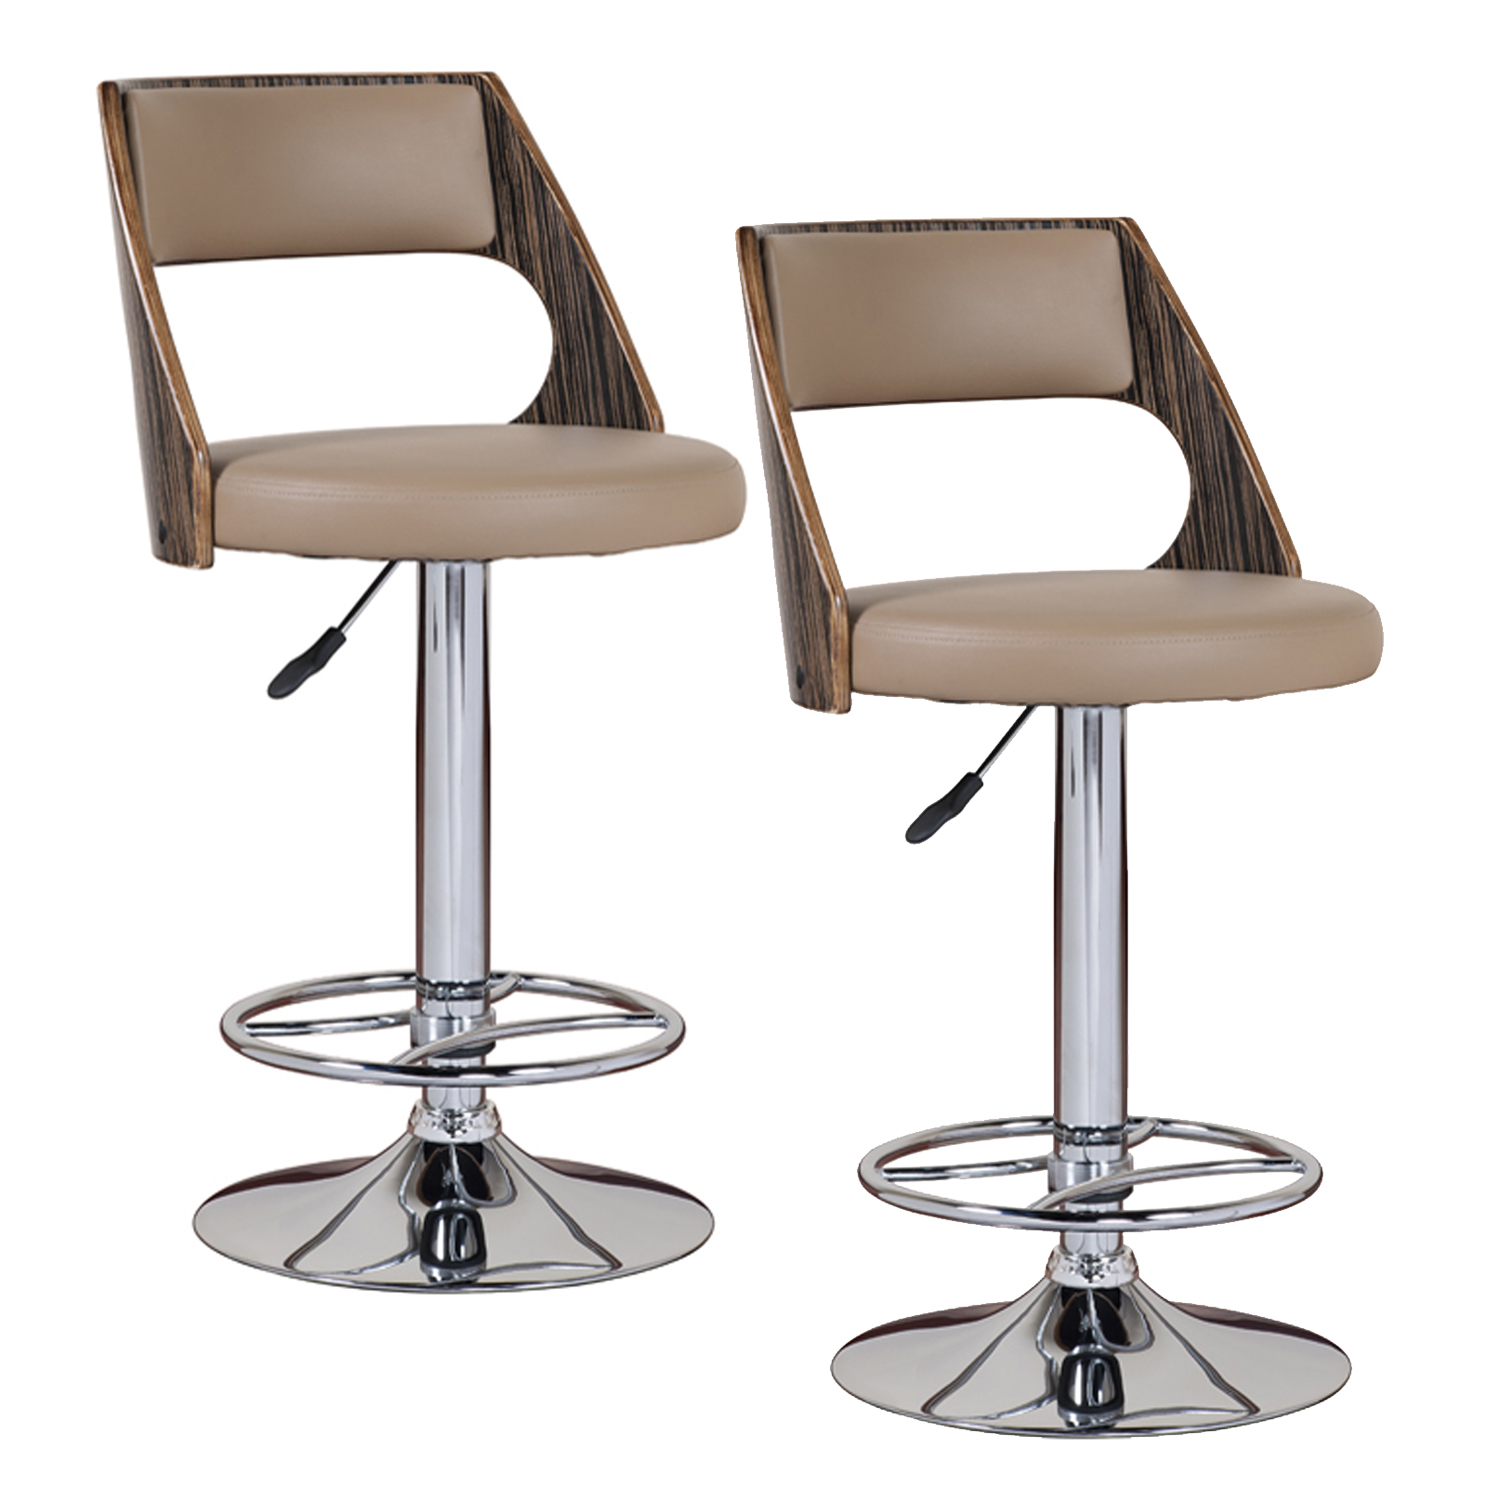 Adjustable Swivel Bar Stools